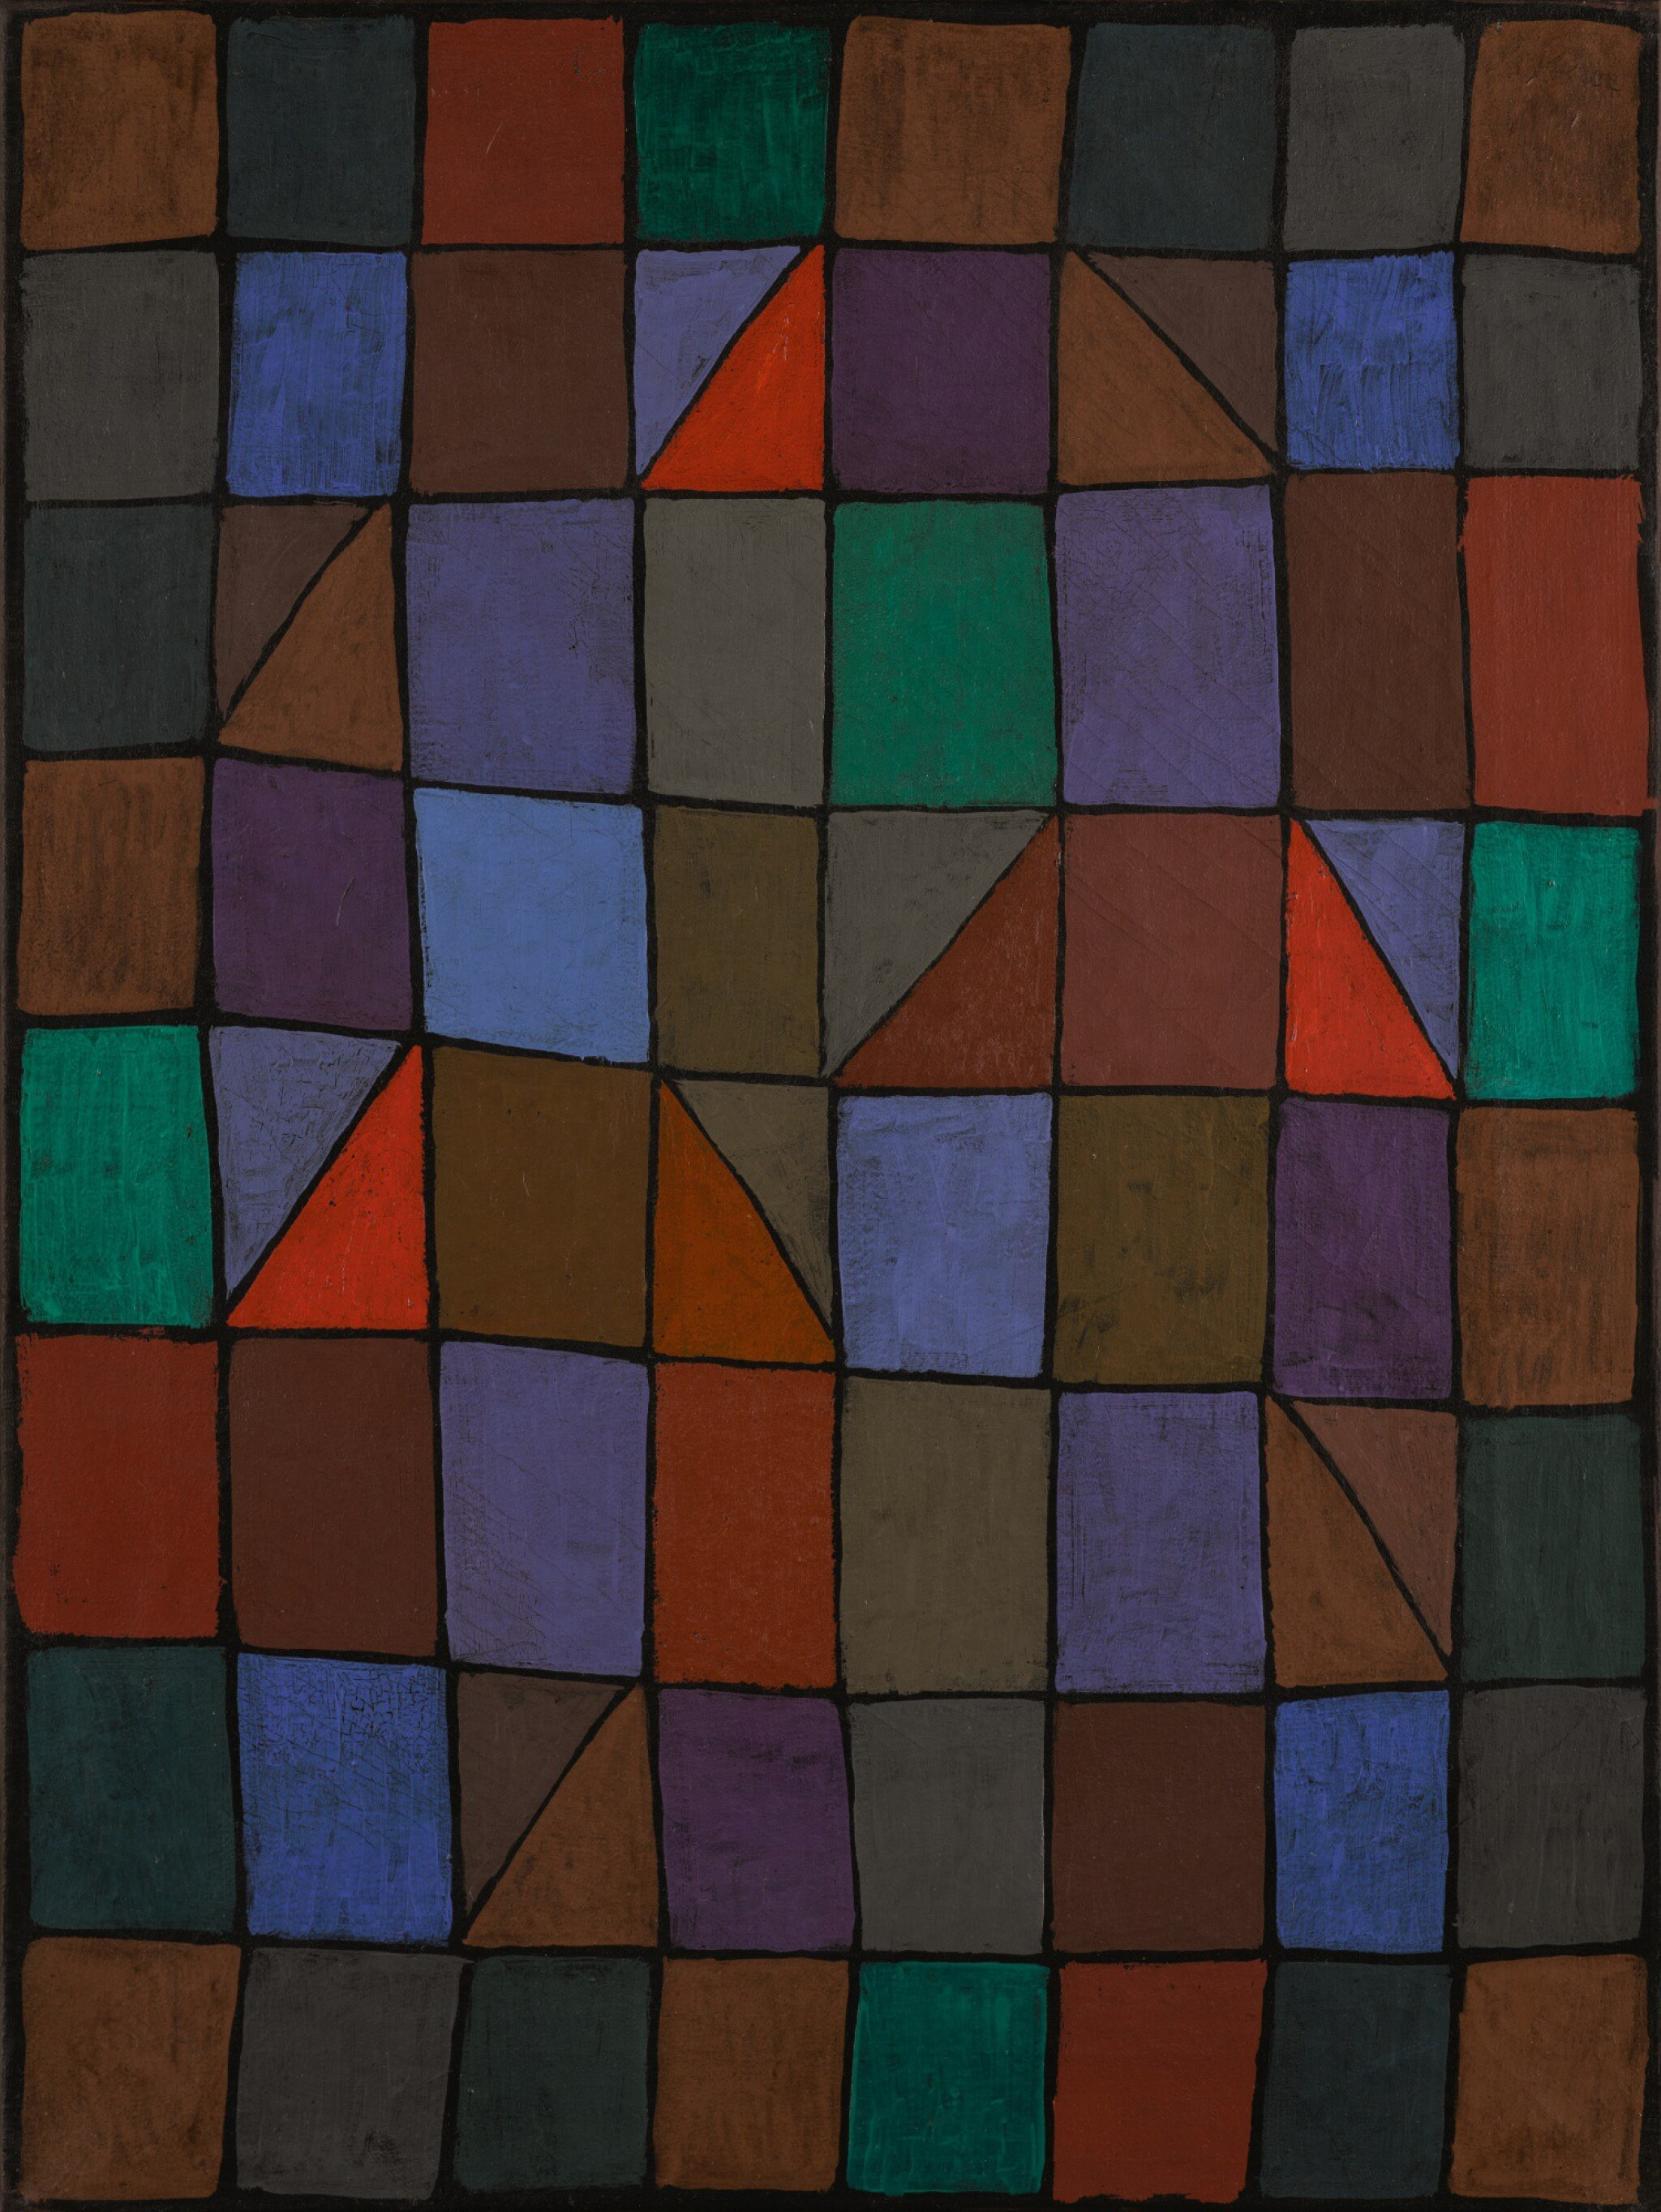 View 1 of Lot 10. PAUL KLEE | ABEND IN N (EVENING IN N) OR ARCHITEKTUR ABENDS (ARCHITECTURE IN THE EVENING).